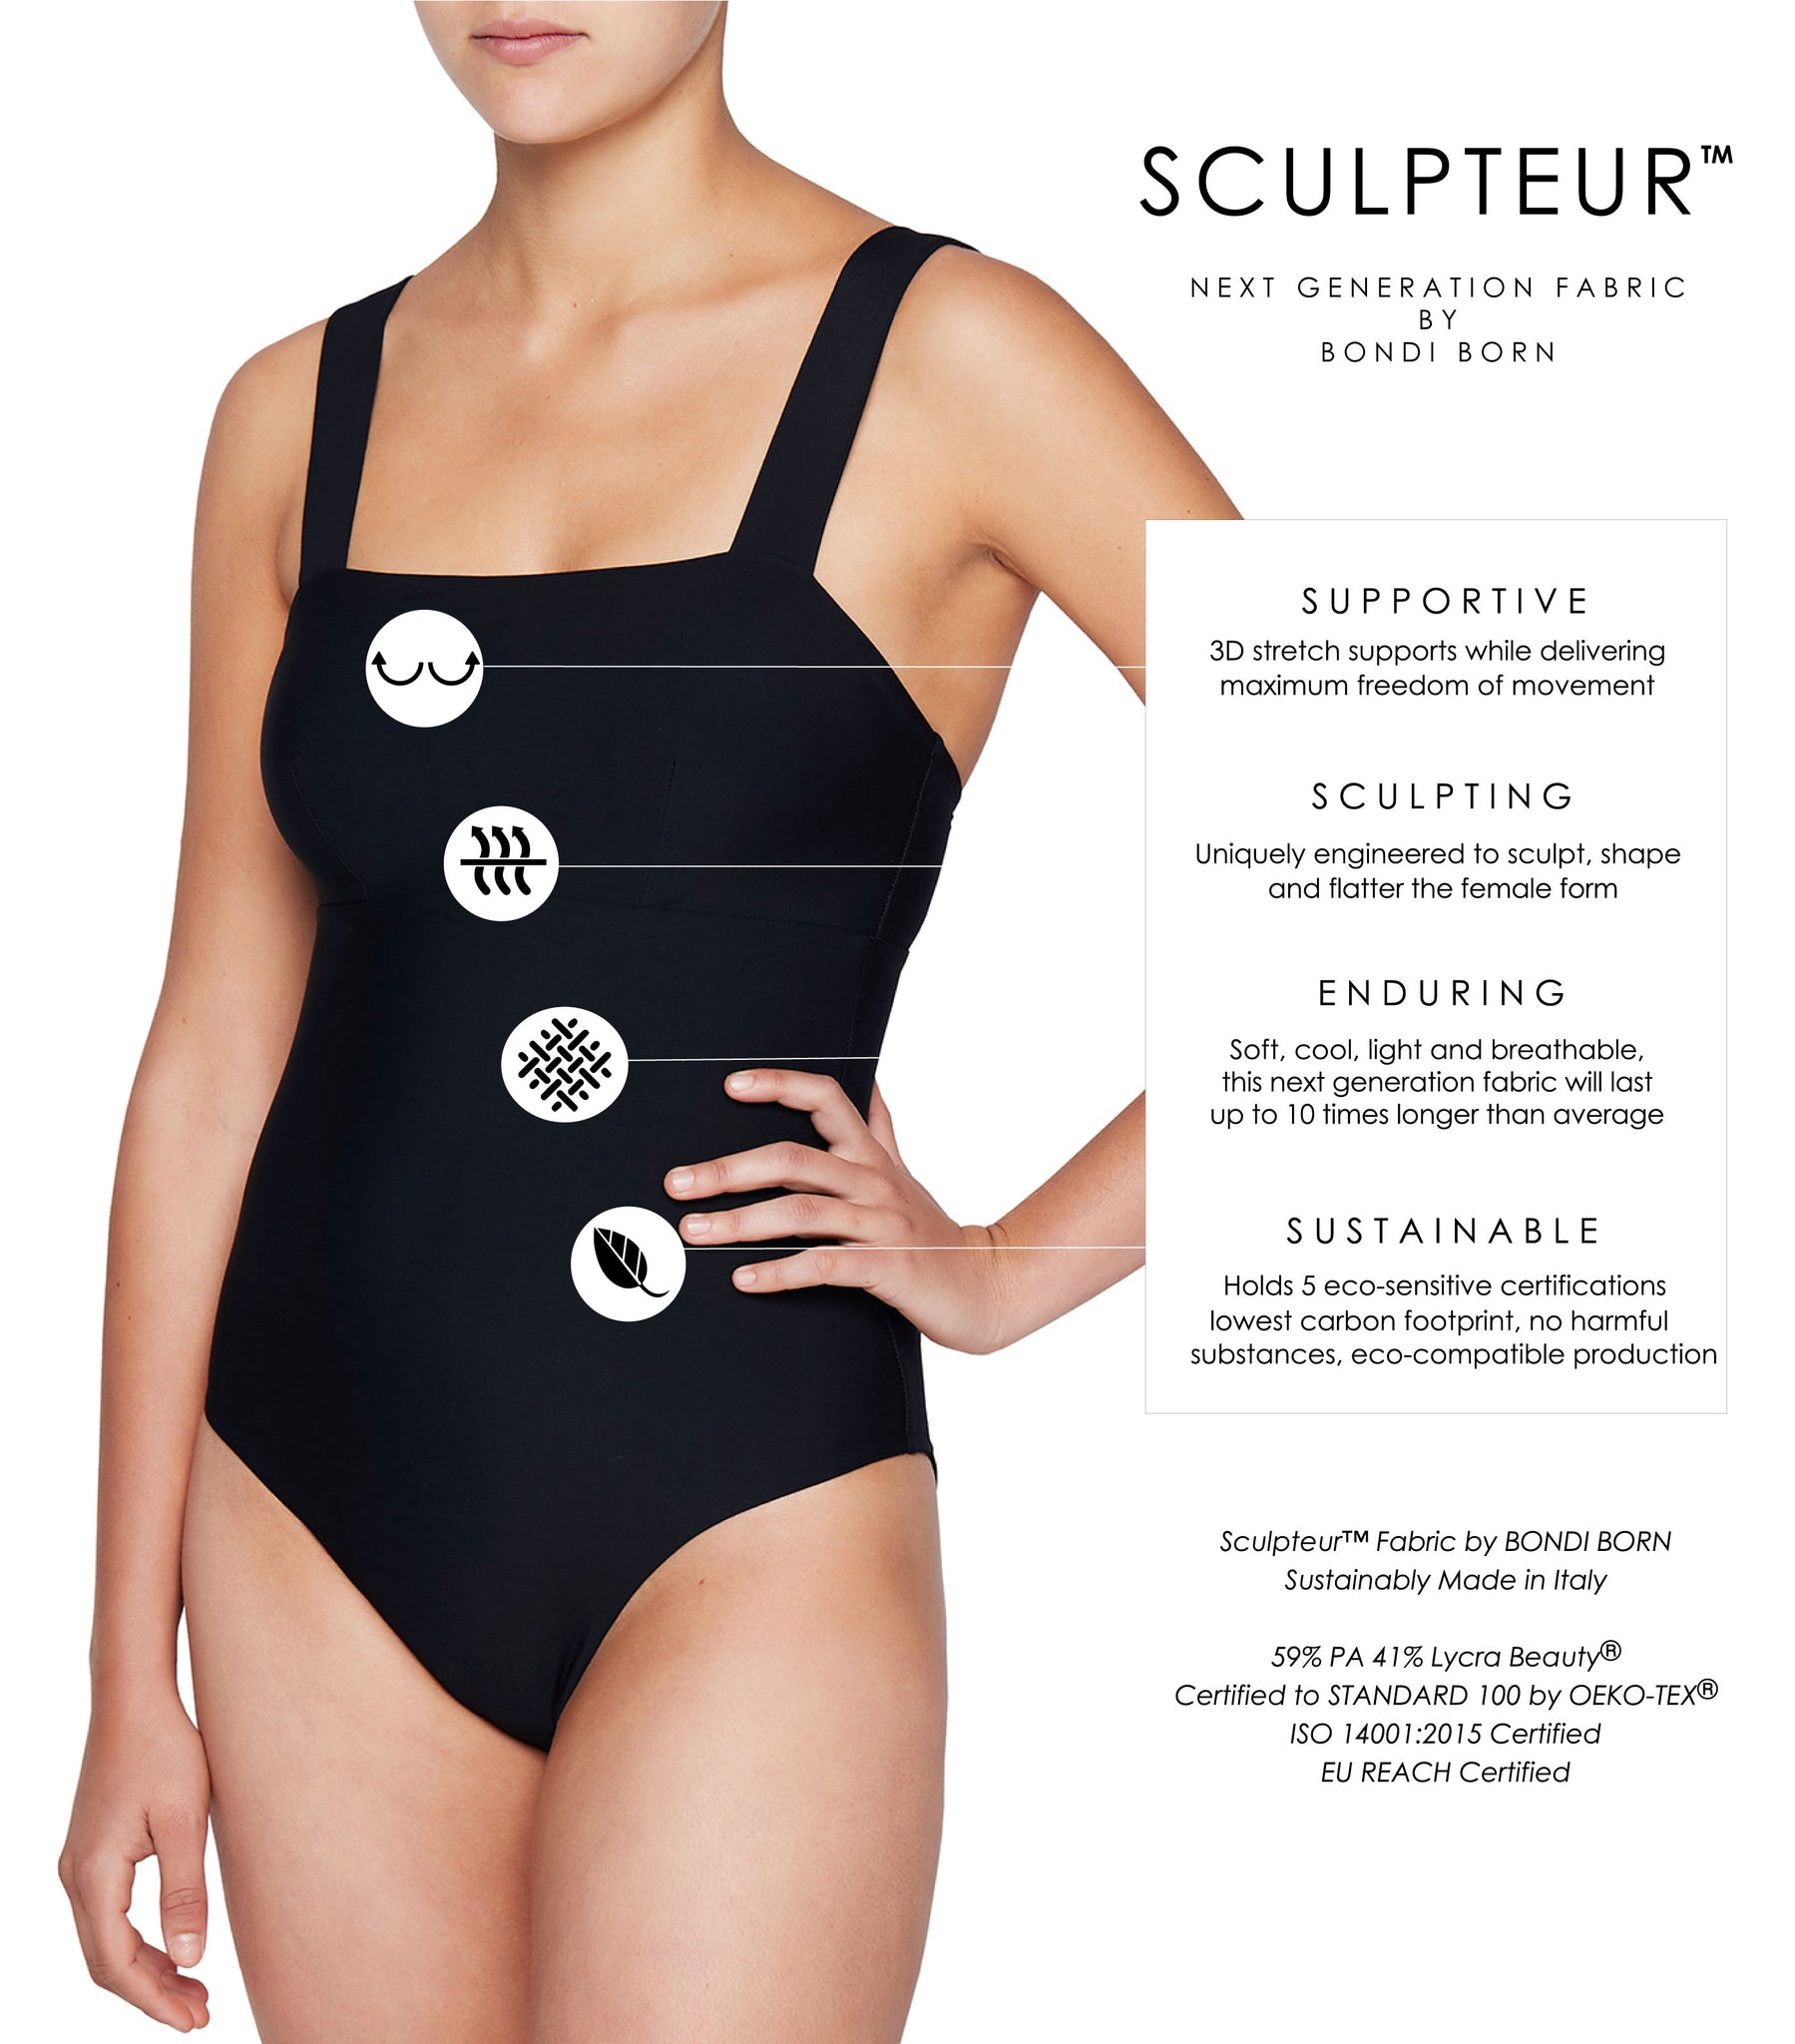 BONDI BORN Sculpteur Fabric for swimwear sculpts and supports the female form.